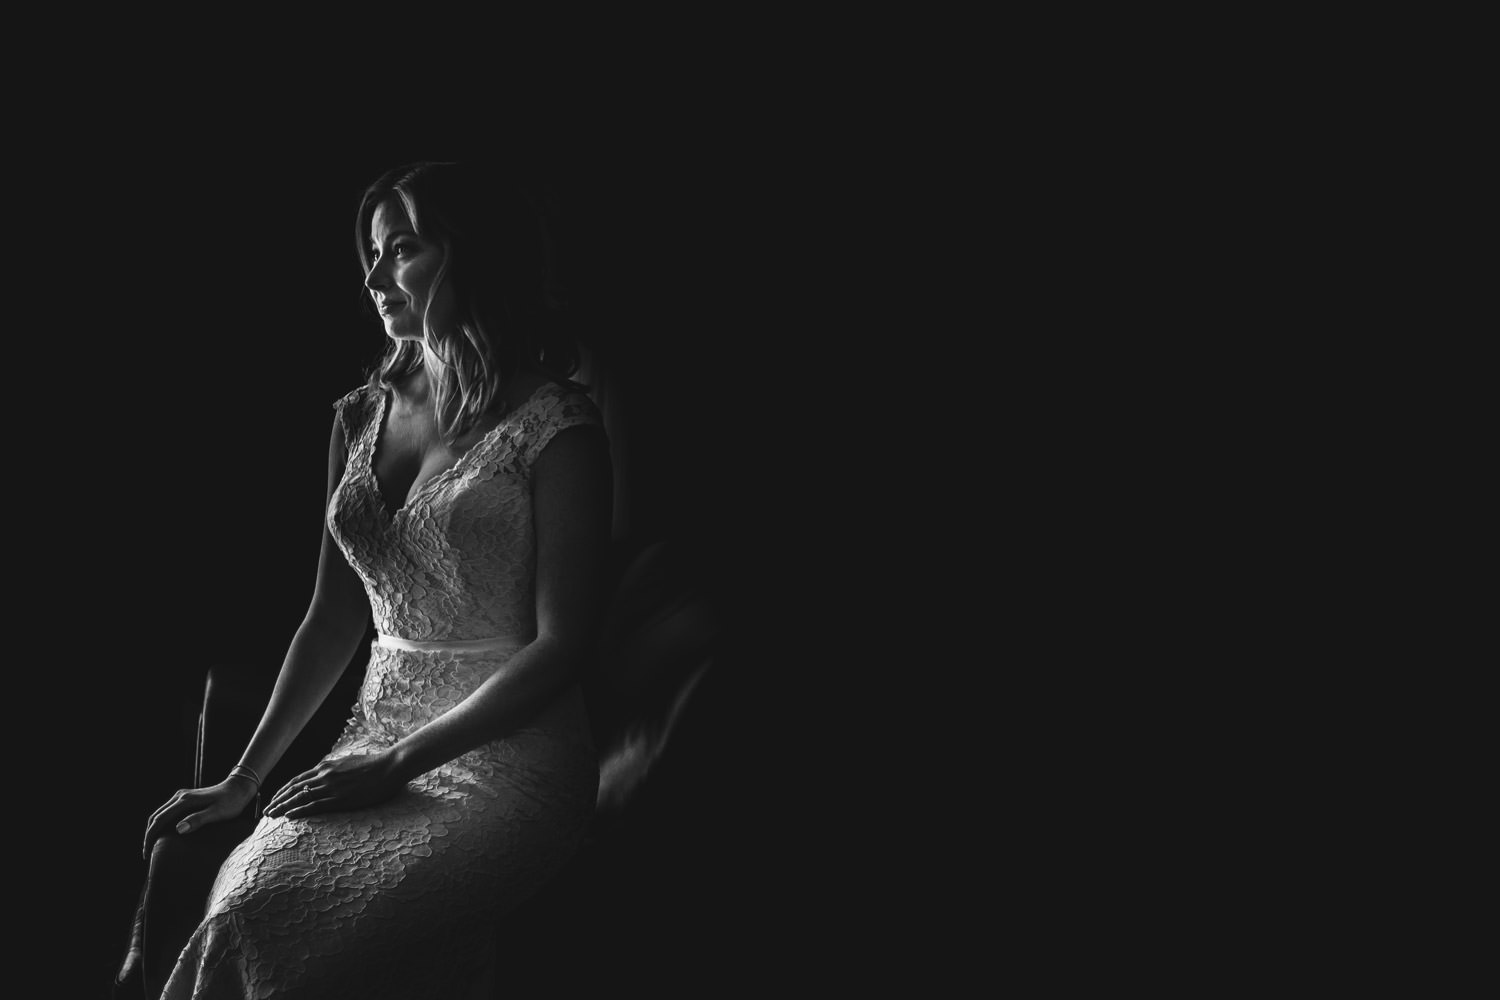 moody photo of the bride taken at Chicago Athletic Association hotel during the wedding